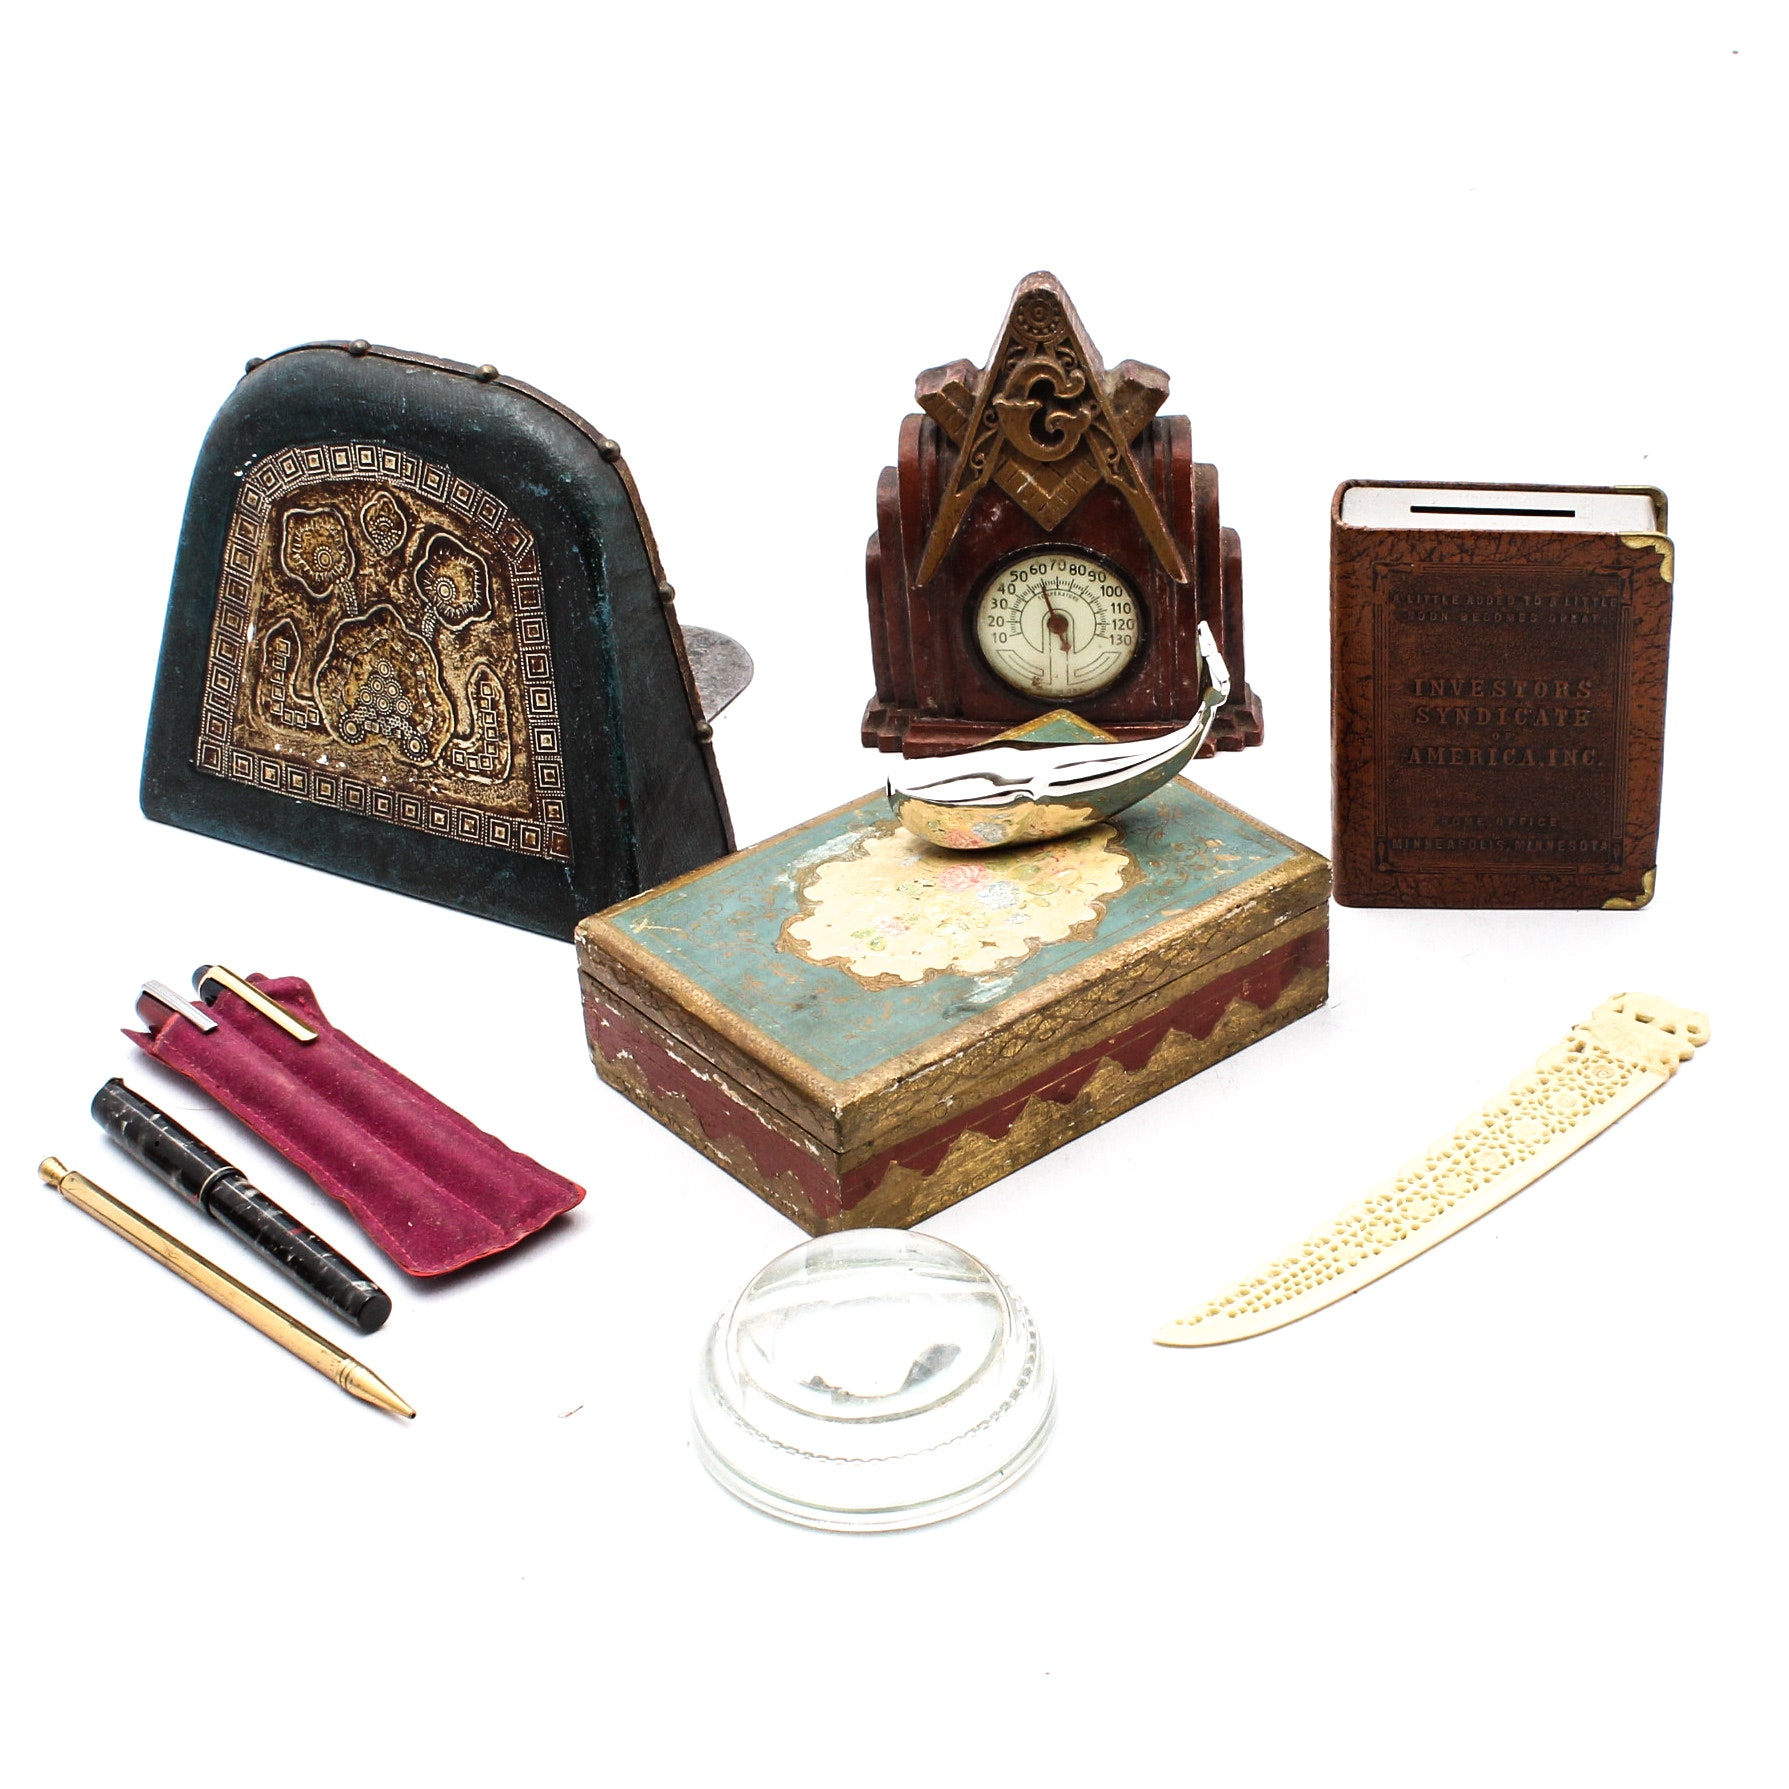 Desk Accessories with Cambridge and Esterbrook Pens